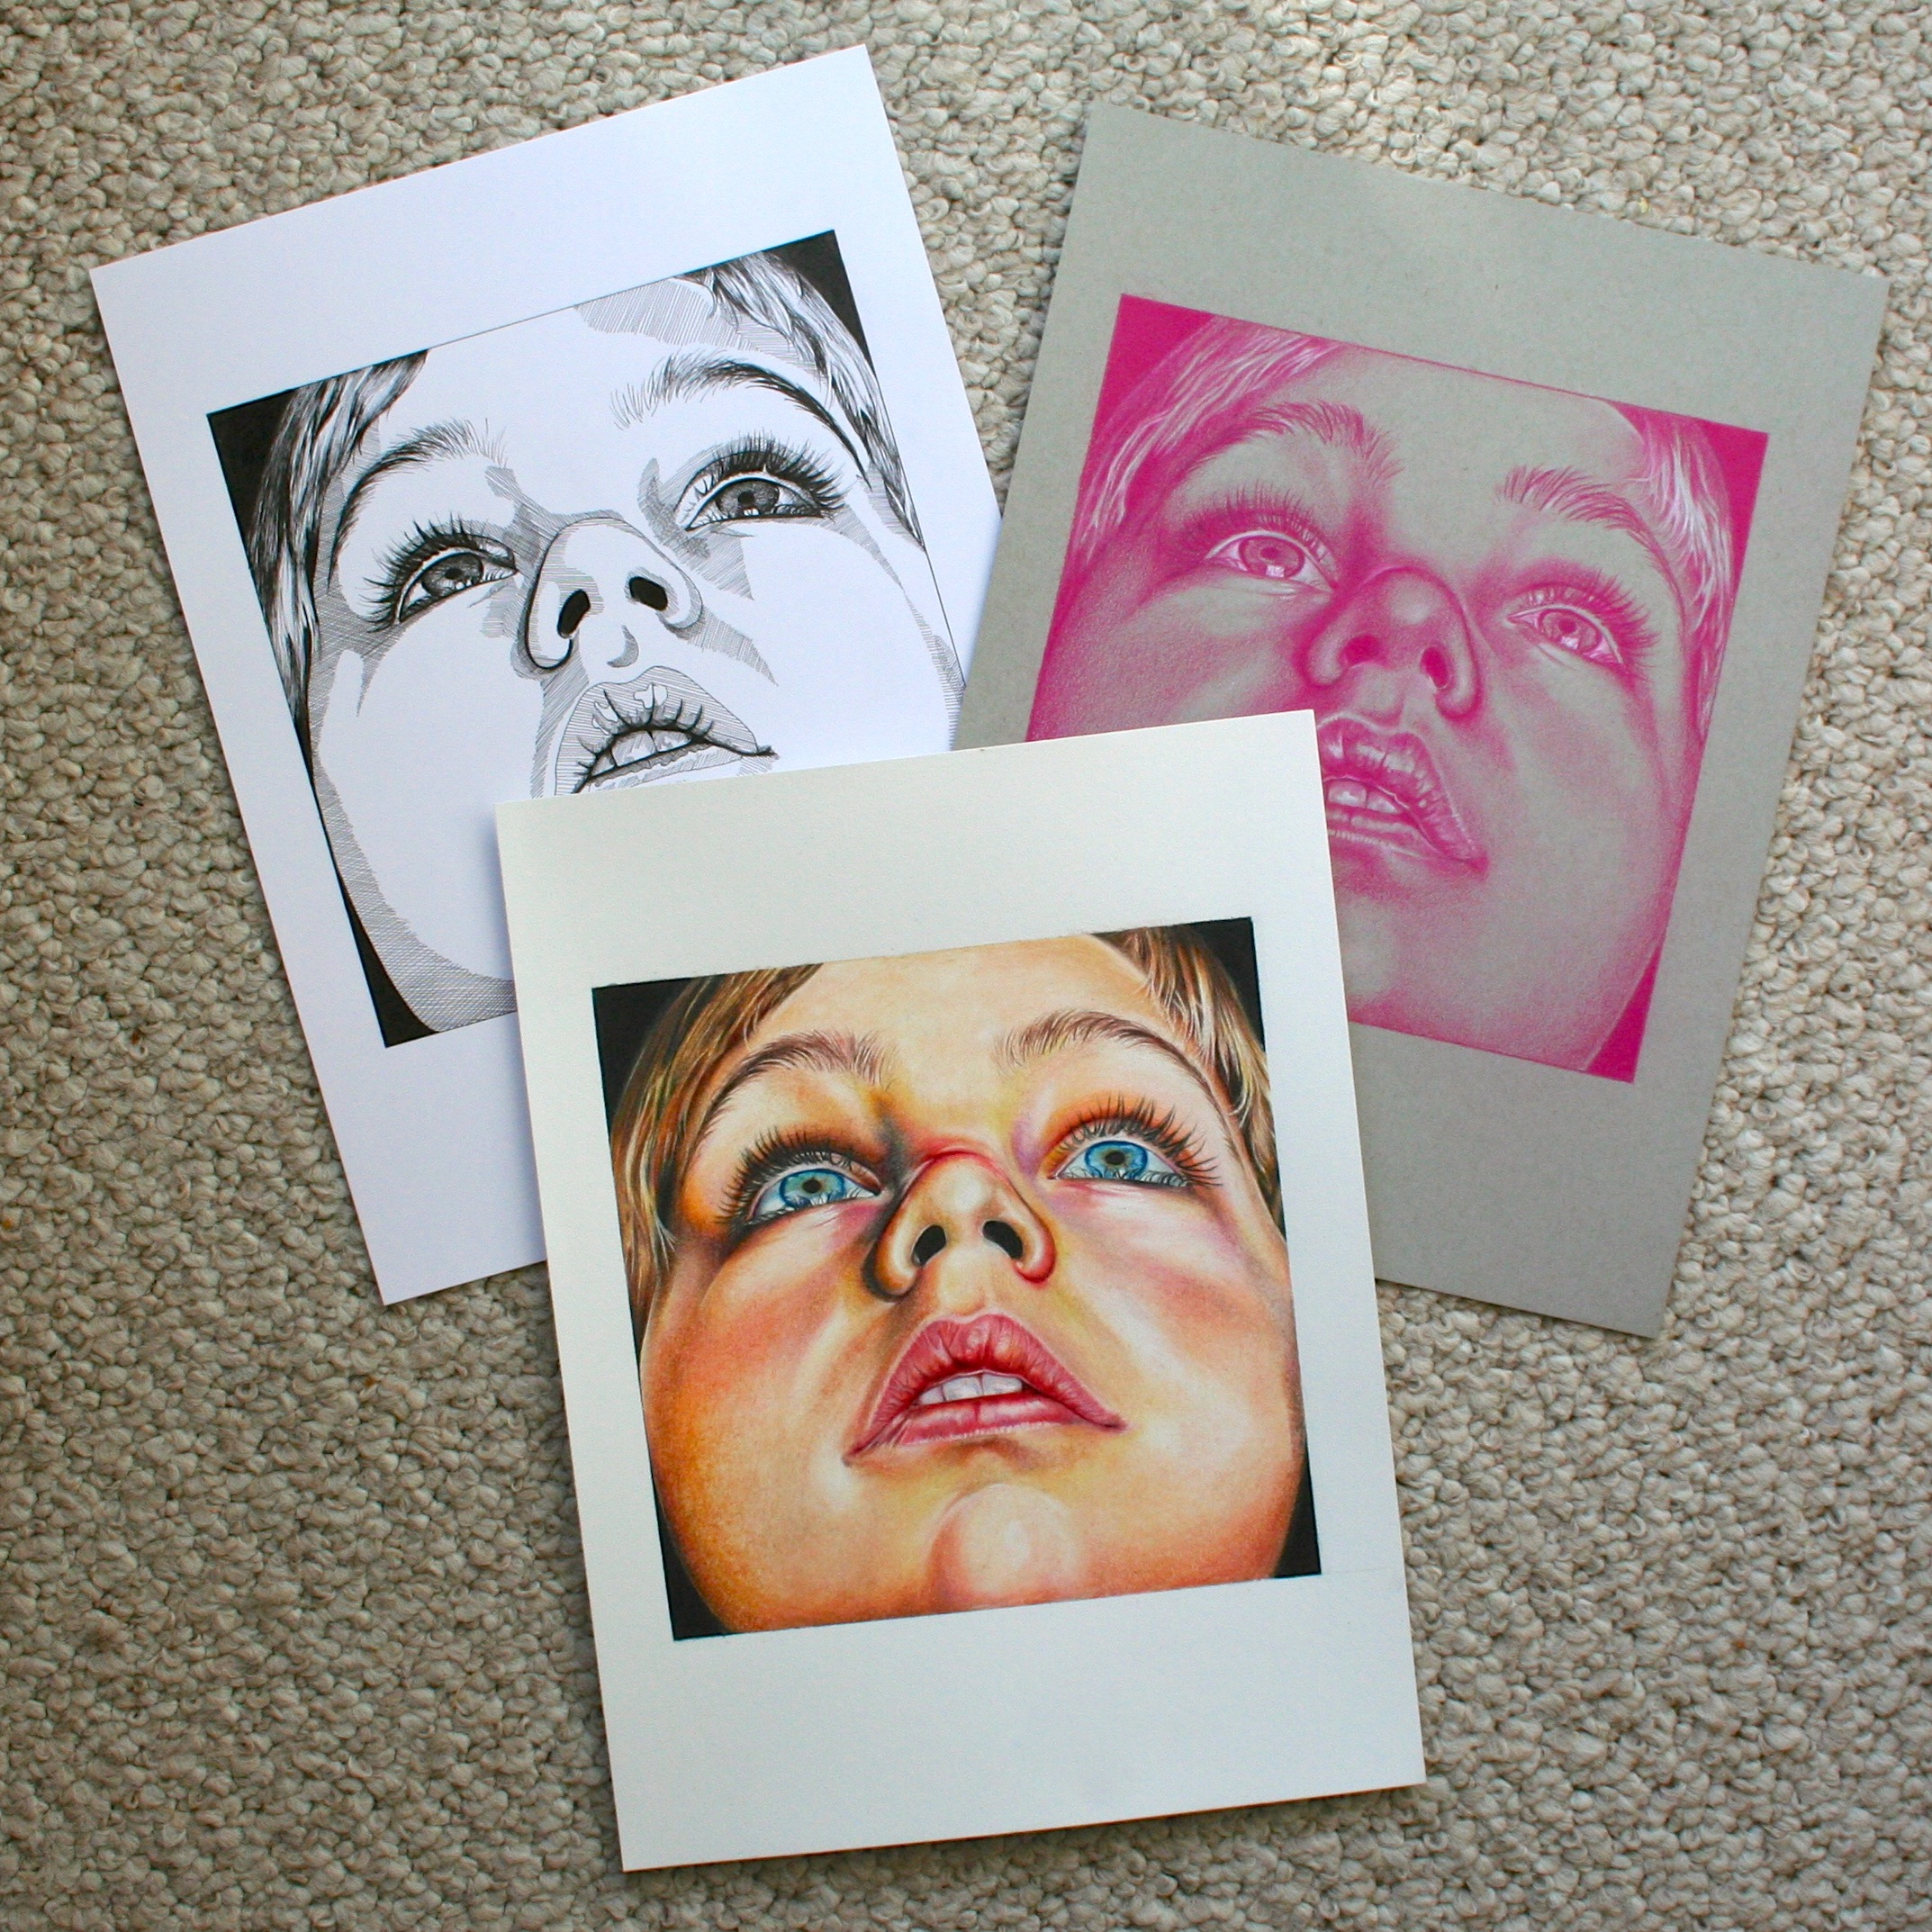 Little Boy - Triptych - All